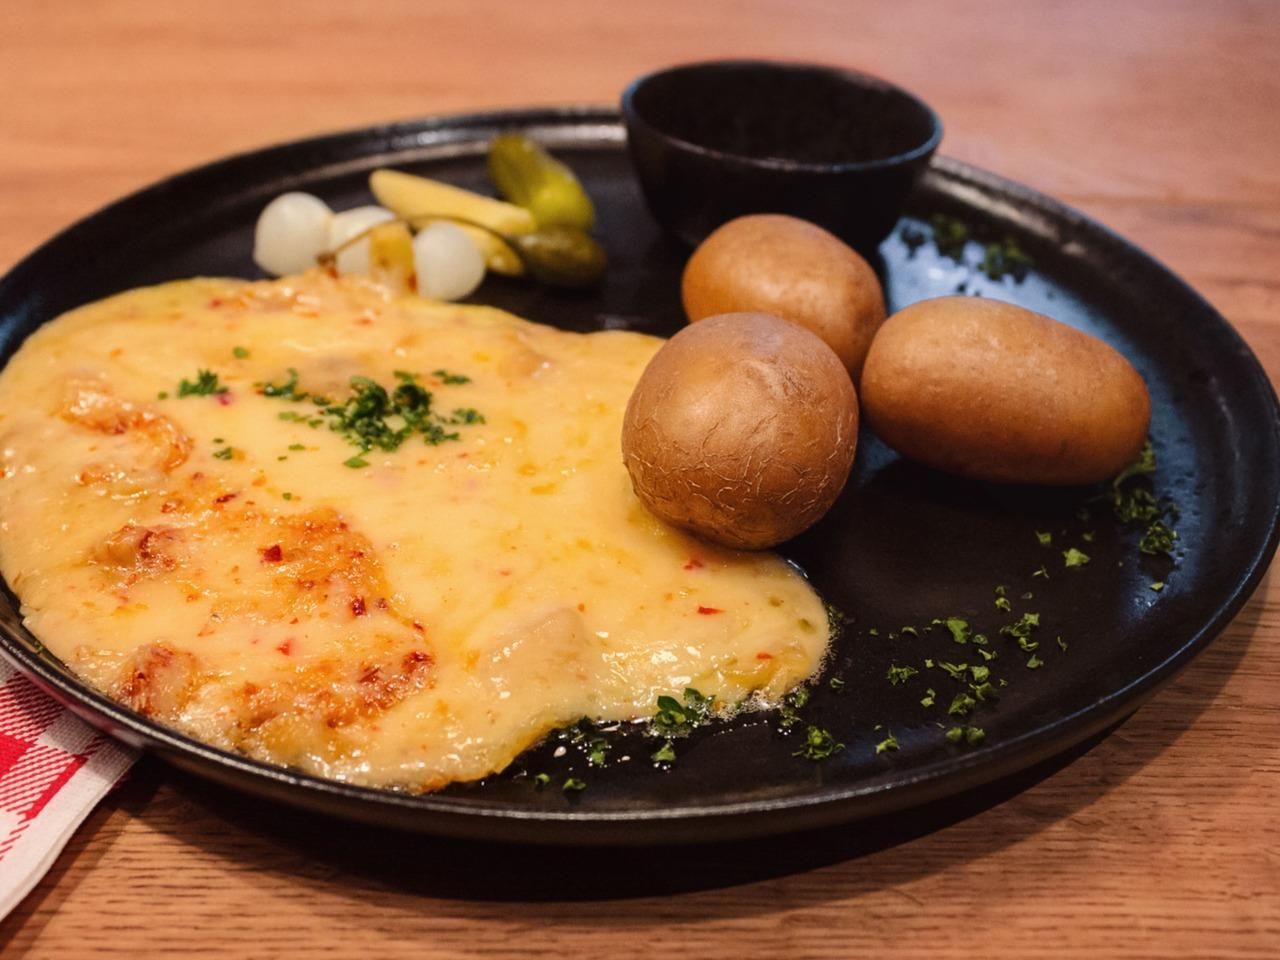 traditional Swiss Raclette cheese meets both modernity and tradition